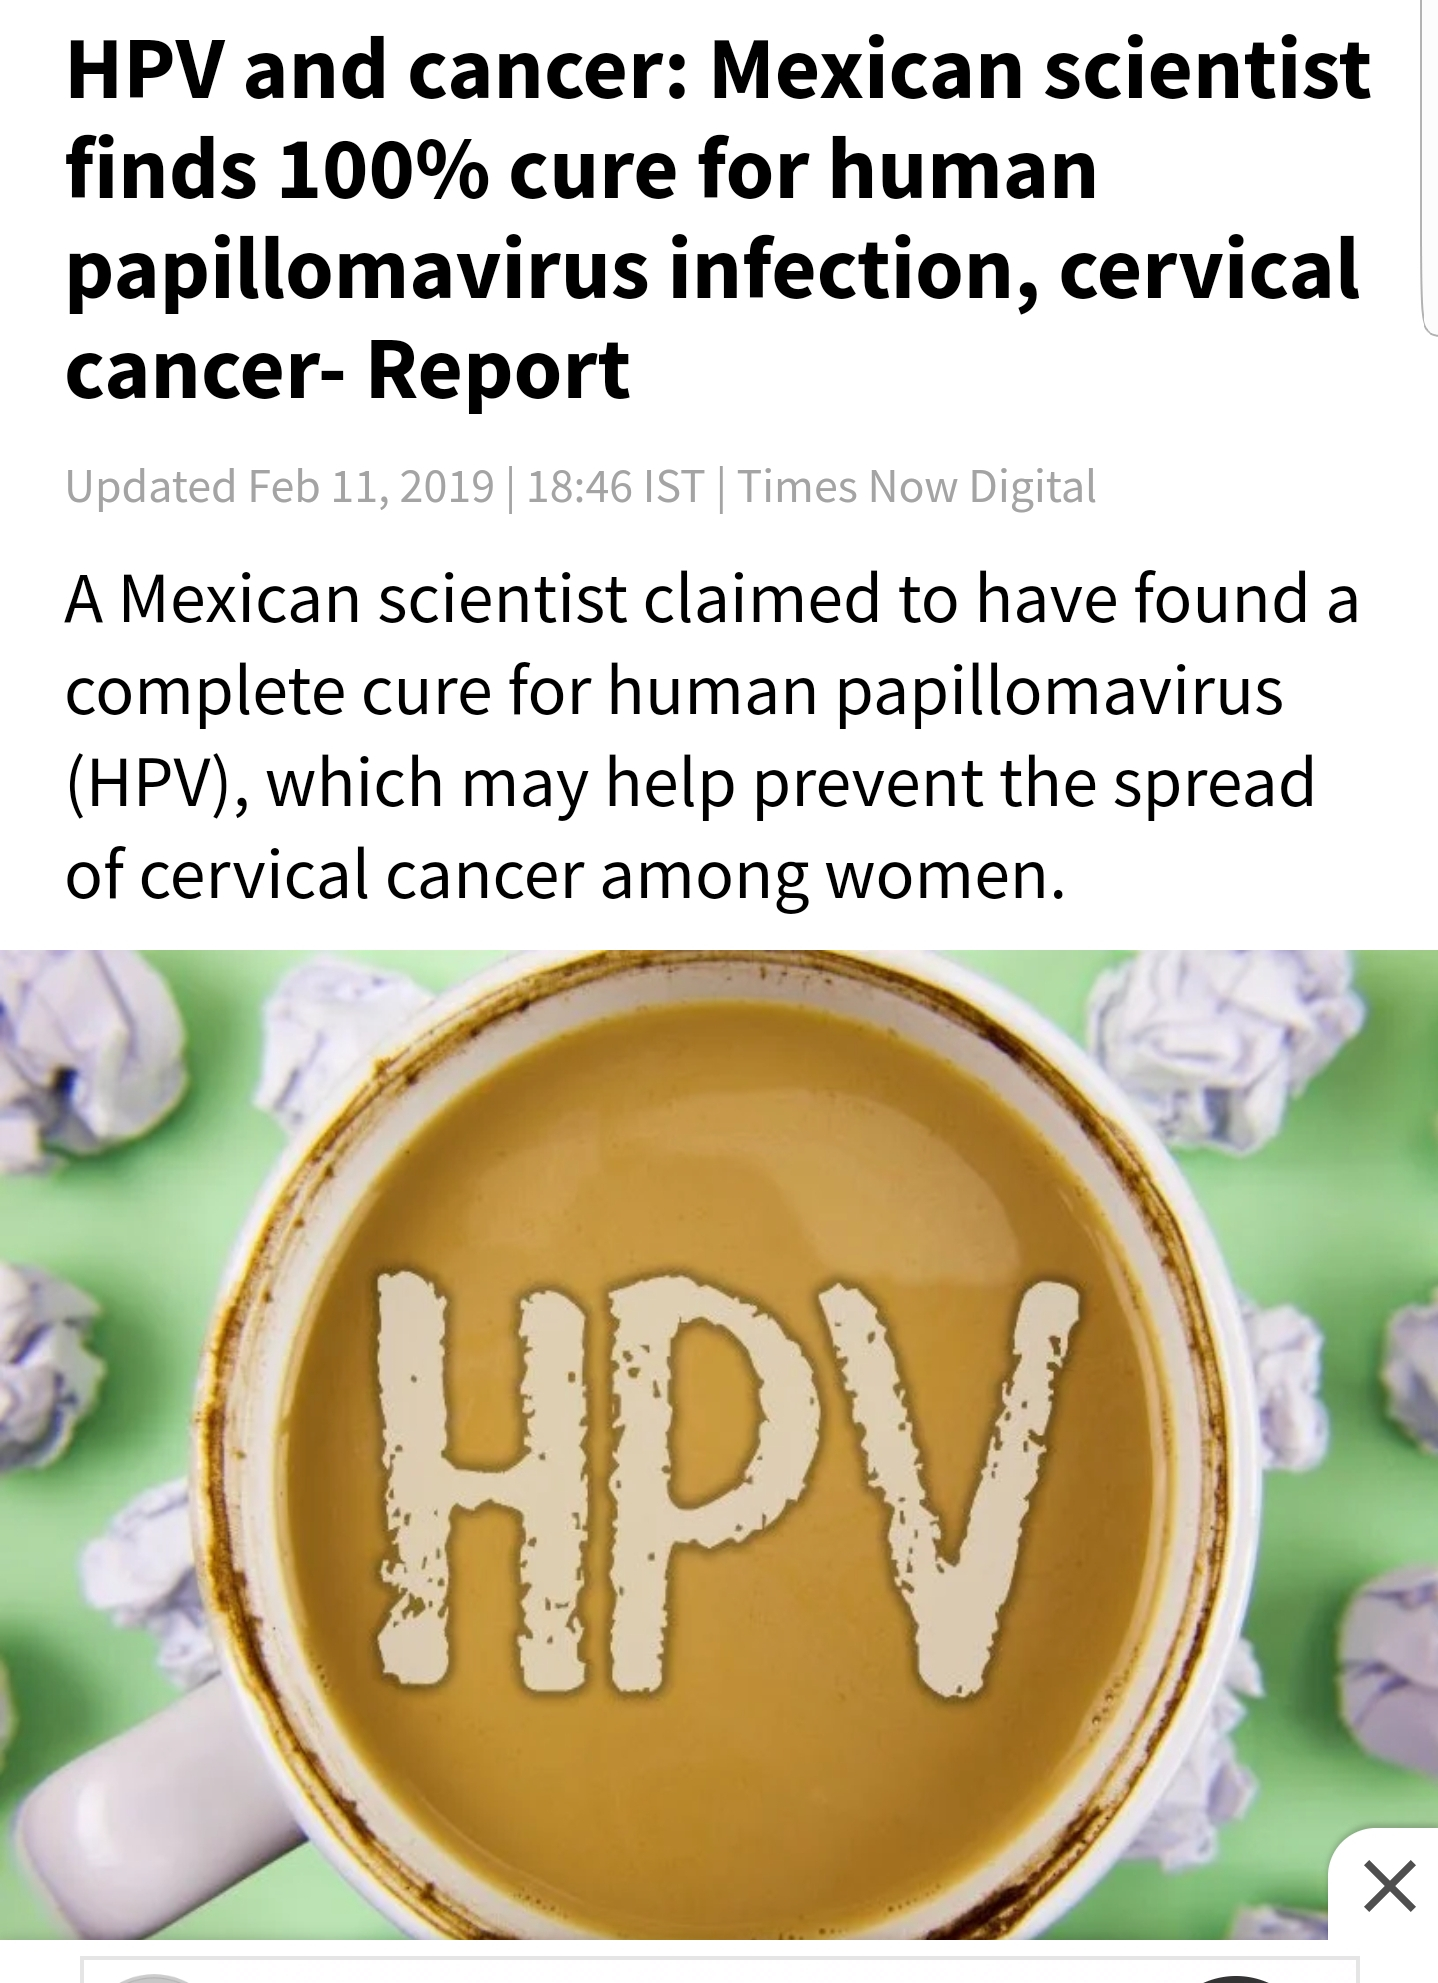 Human papillomavirus infection natural cure. Hpv vaccine side effects pregnancy